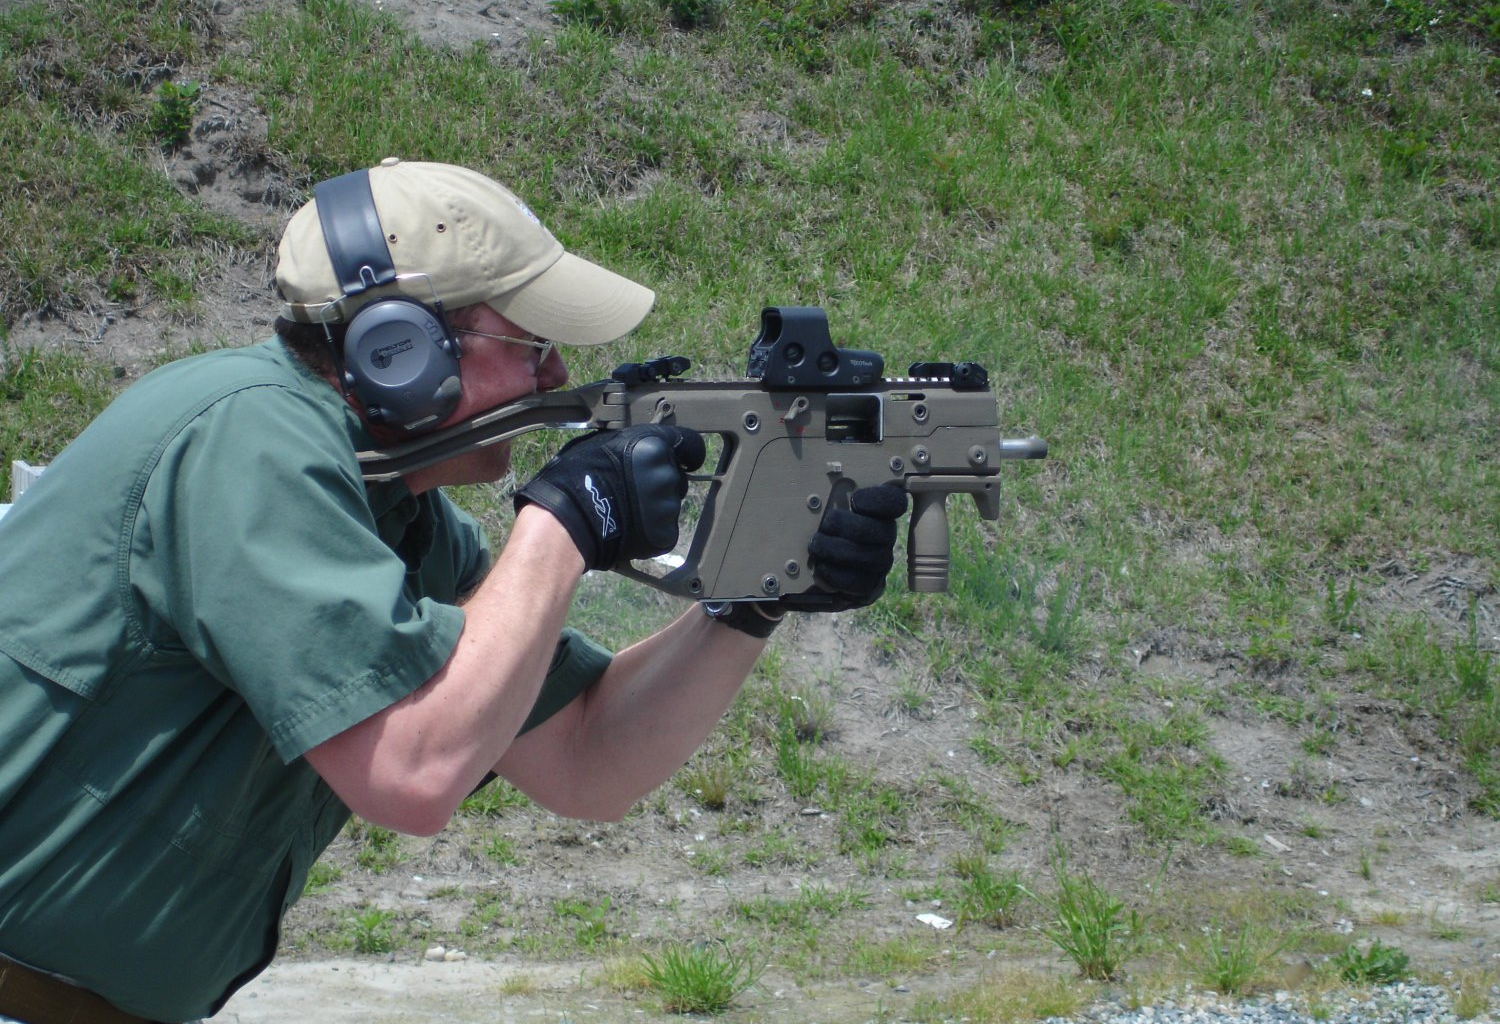 KRISS Vector SMG A Man Using The KRISS Vector SMG